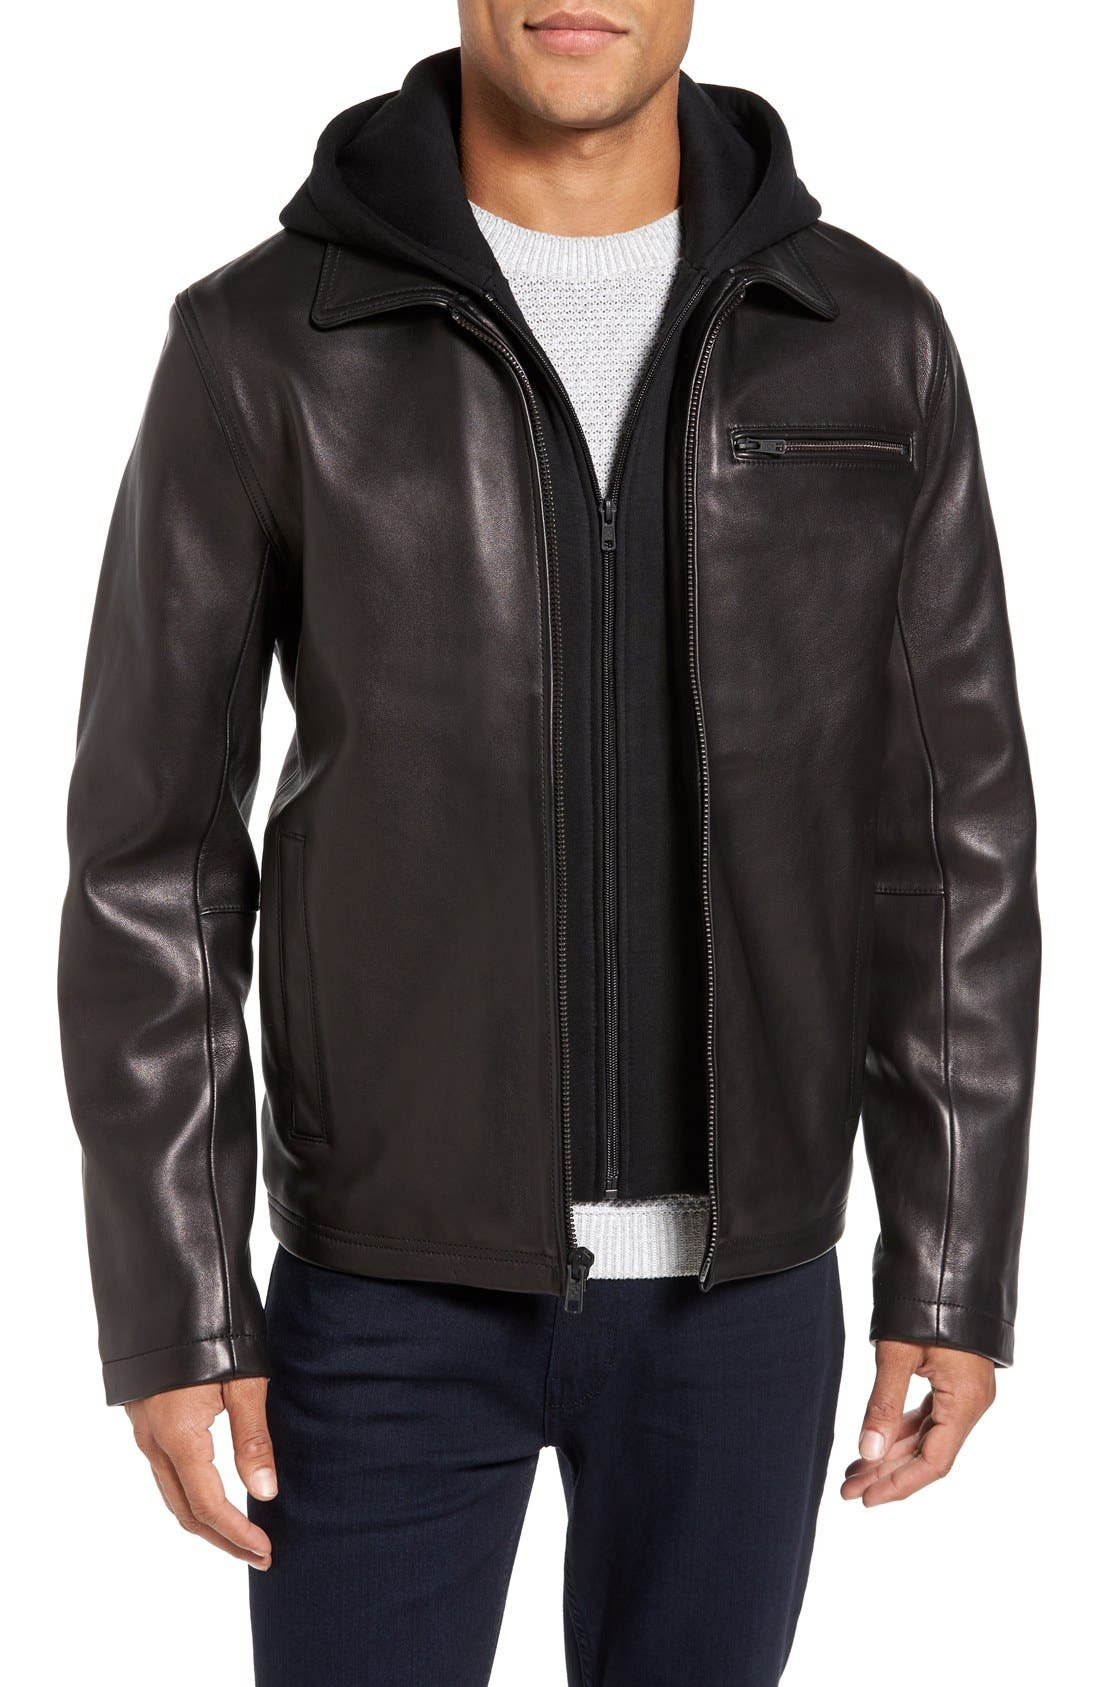 Main Image - Vince Camuto Leather Jacket with Removable Hooded Bib